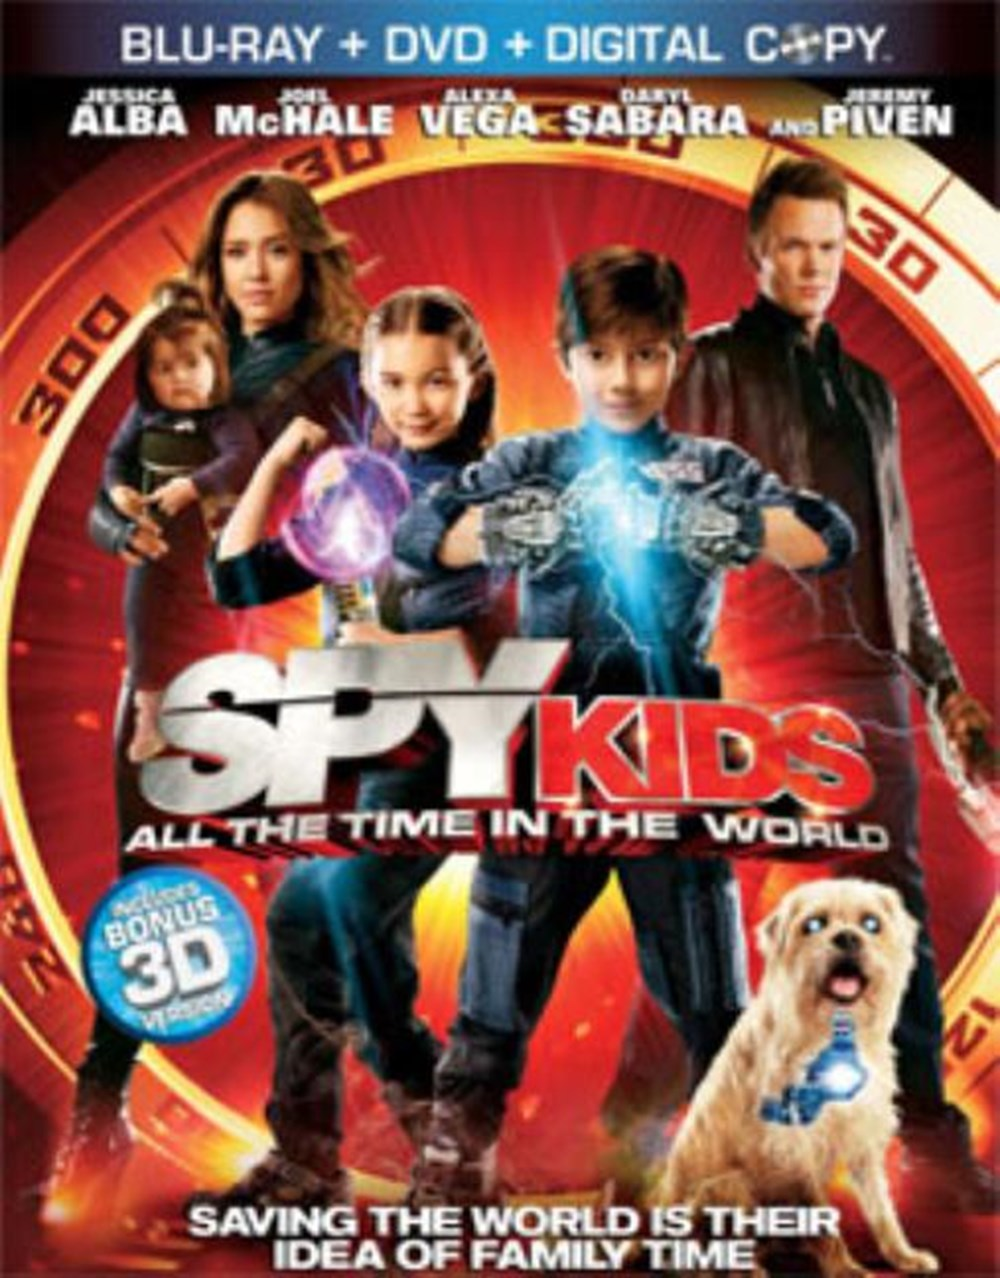 Spy Kids All the Time in the World (DVD Included)